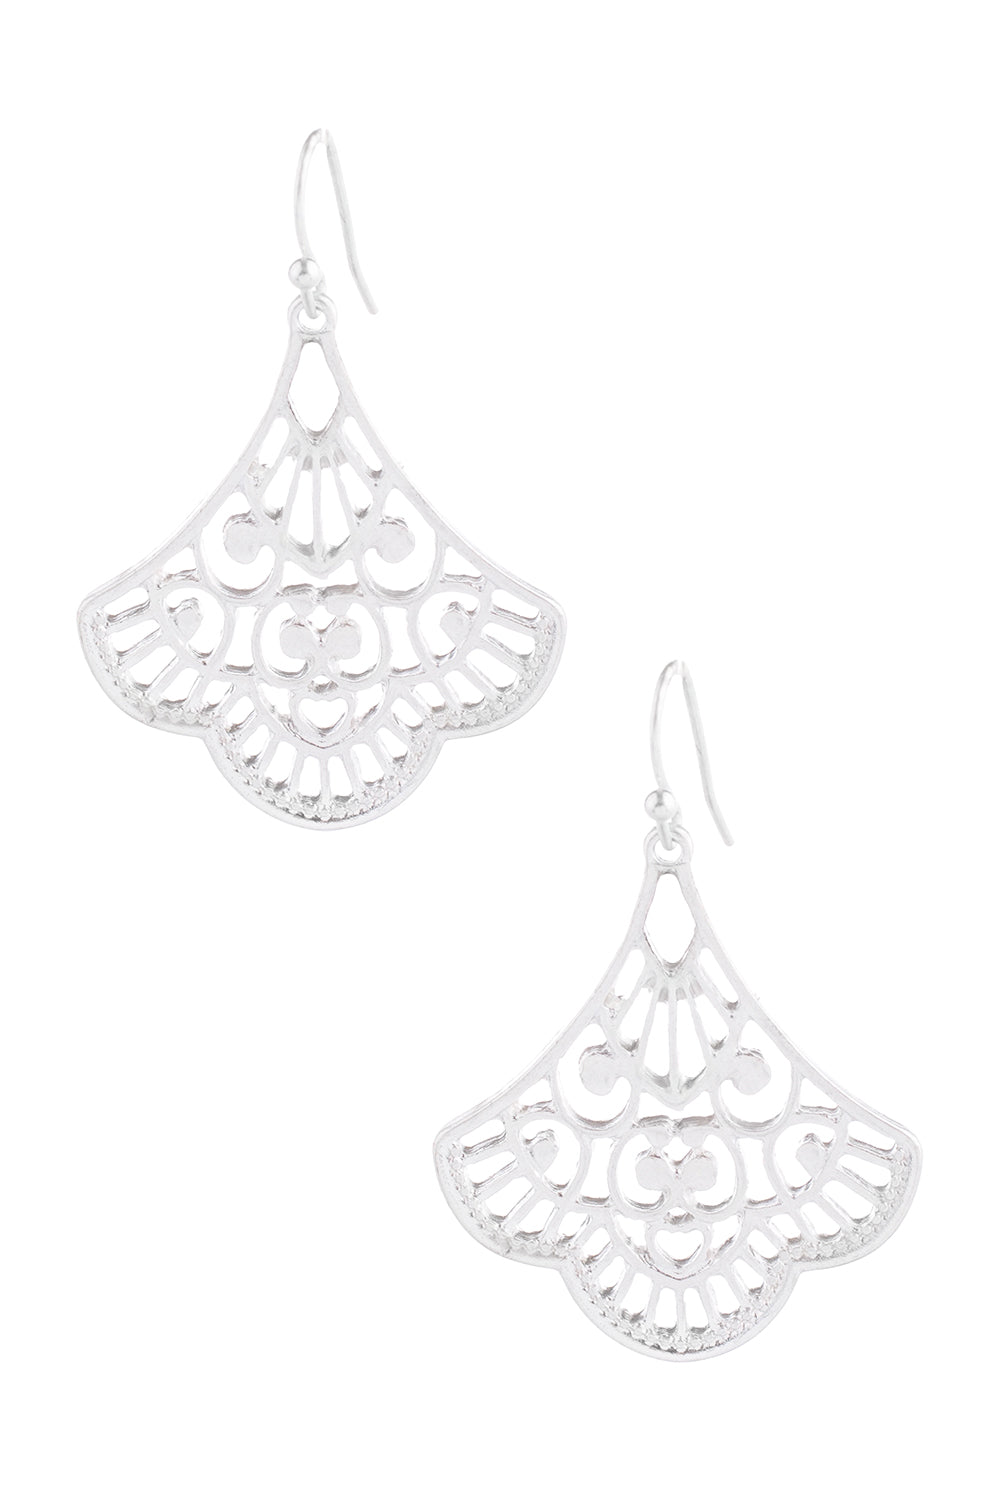 Type 2 Fanning Earrings